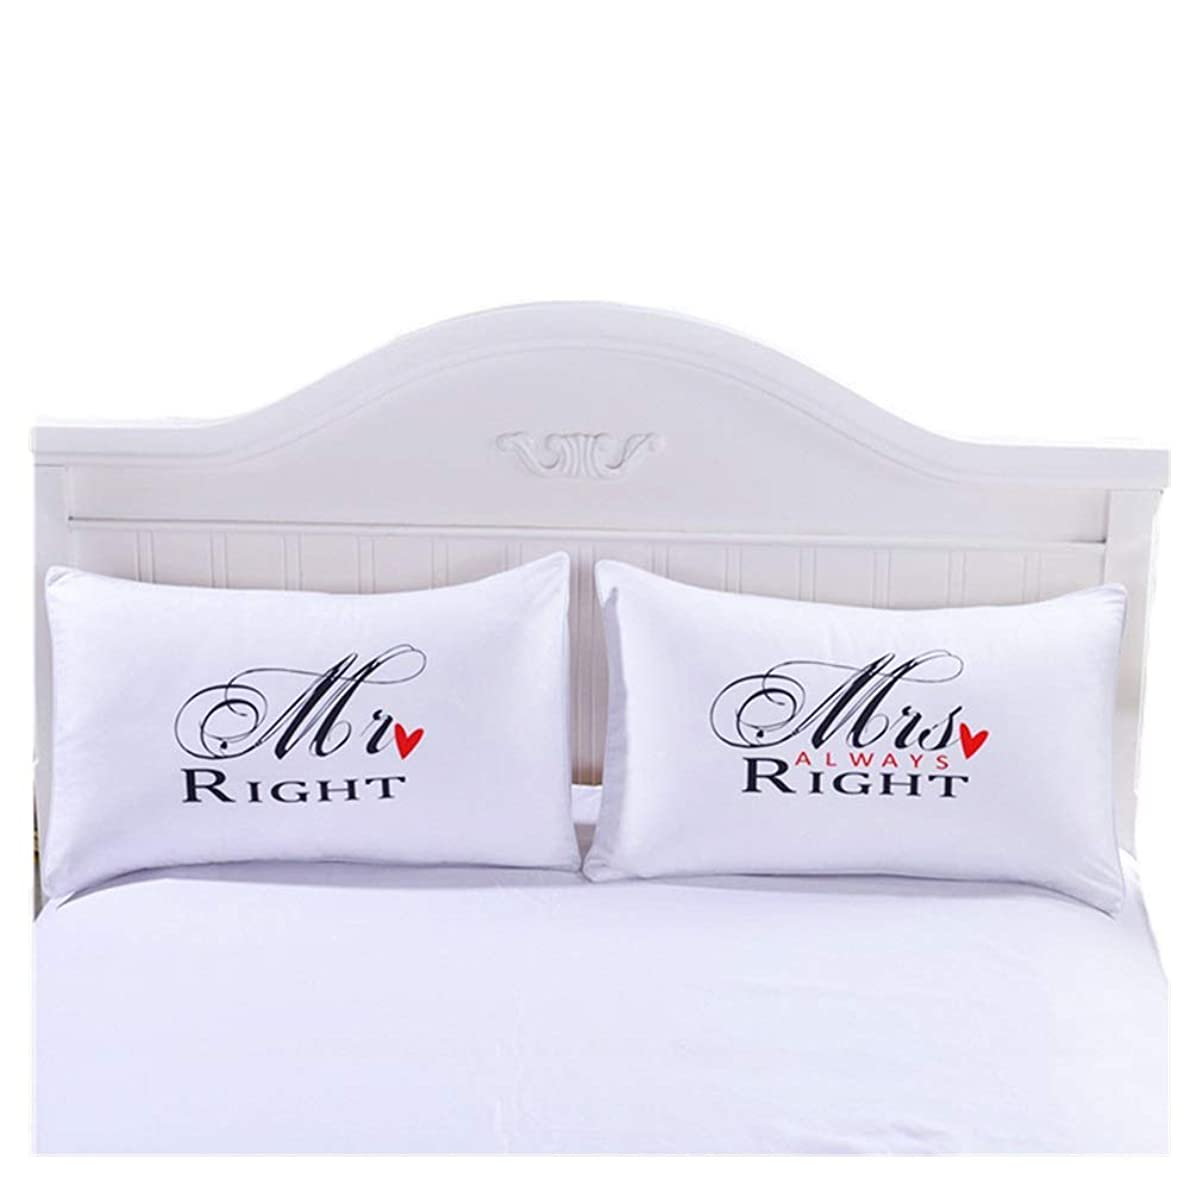 CheeseandU Mr.Right & Mrs.Always Right Couples Pillowcase Set, Romantic Gift Idea for Couples, Valentines Day, Anniversary, Wedding, Engagement, for Him and Her in Love, White&Black(3519iInch)